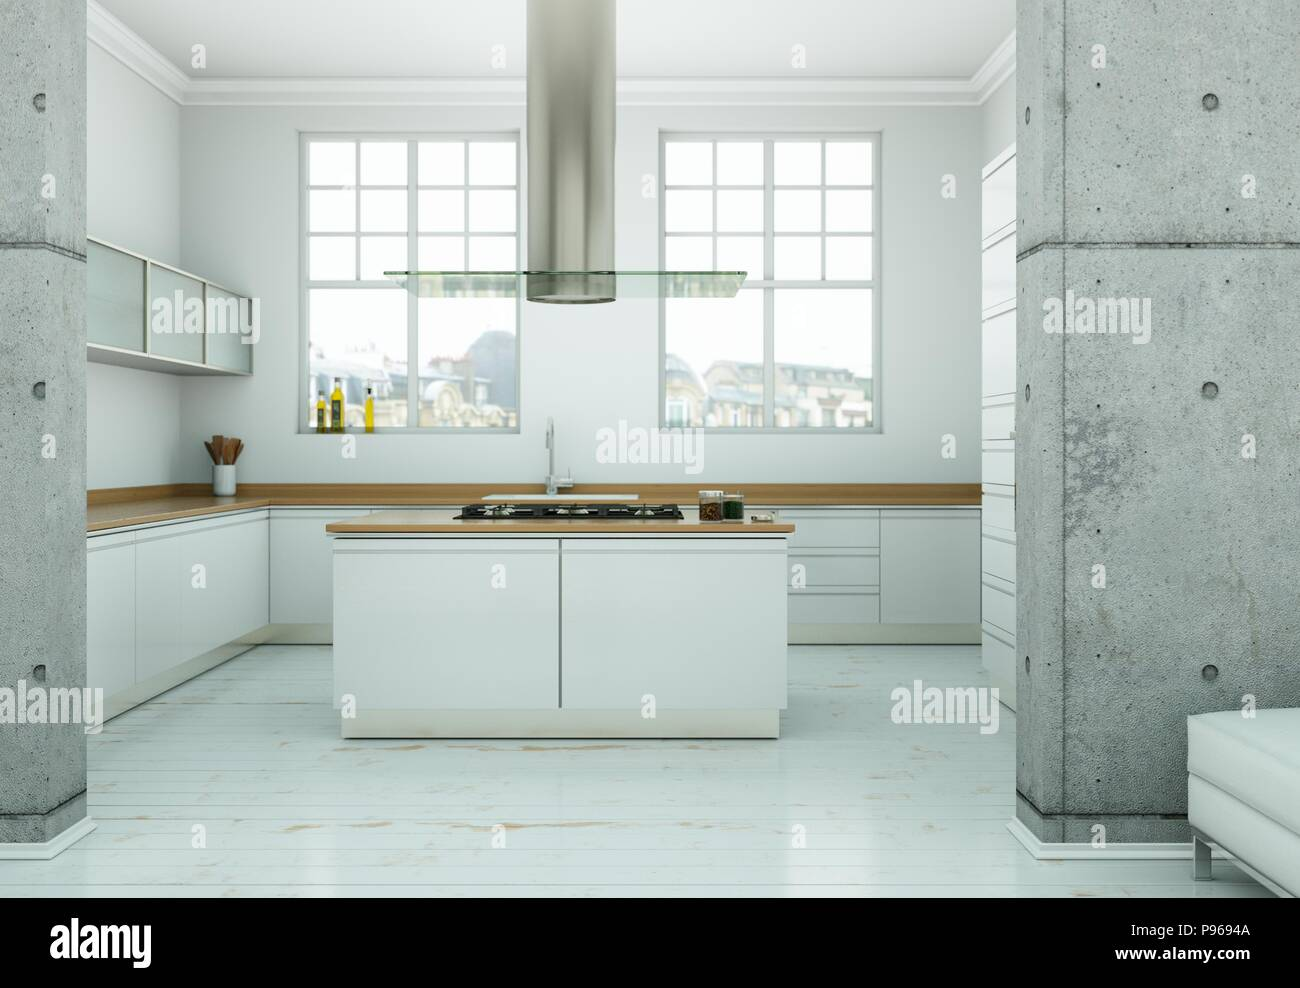 Nordic Kitchen In Loft Apartment Stock Photos & Nordic Kitchen In ...